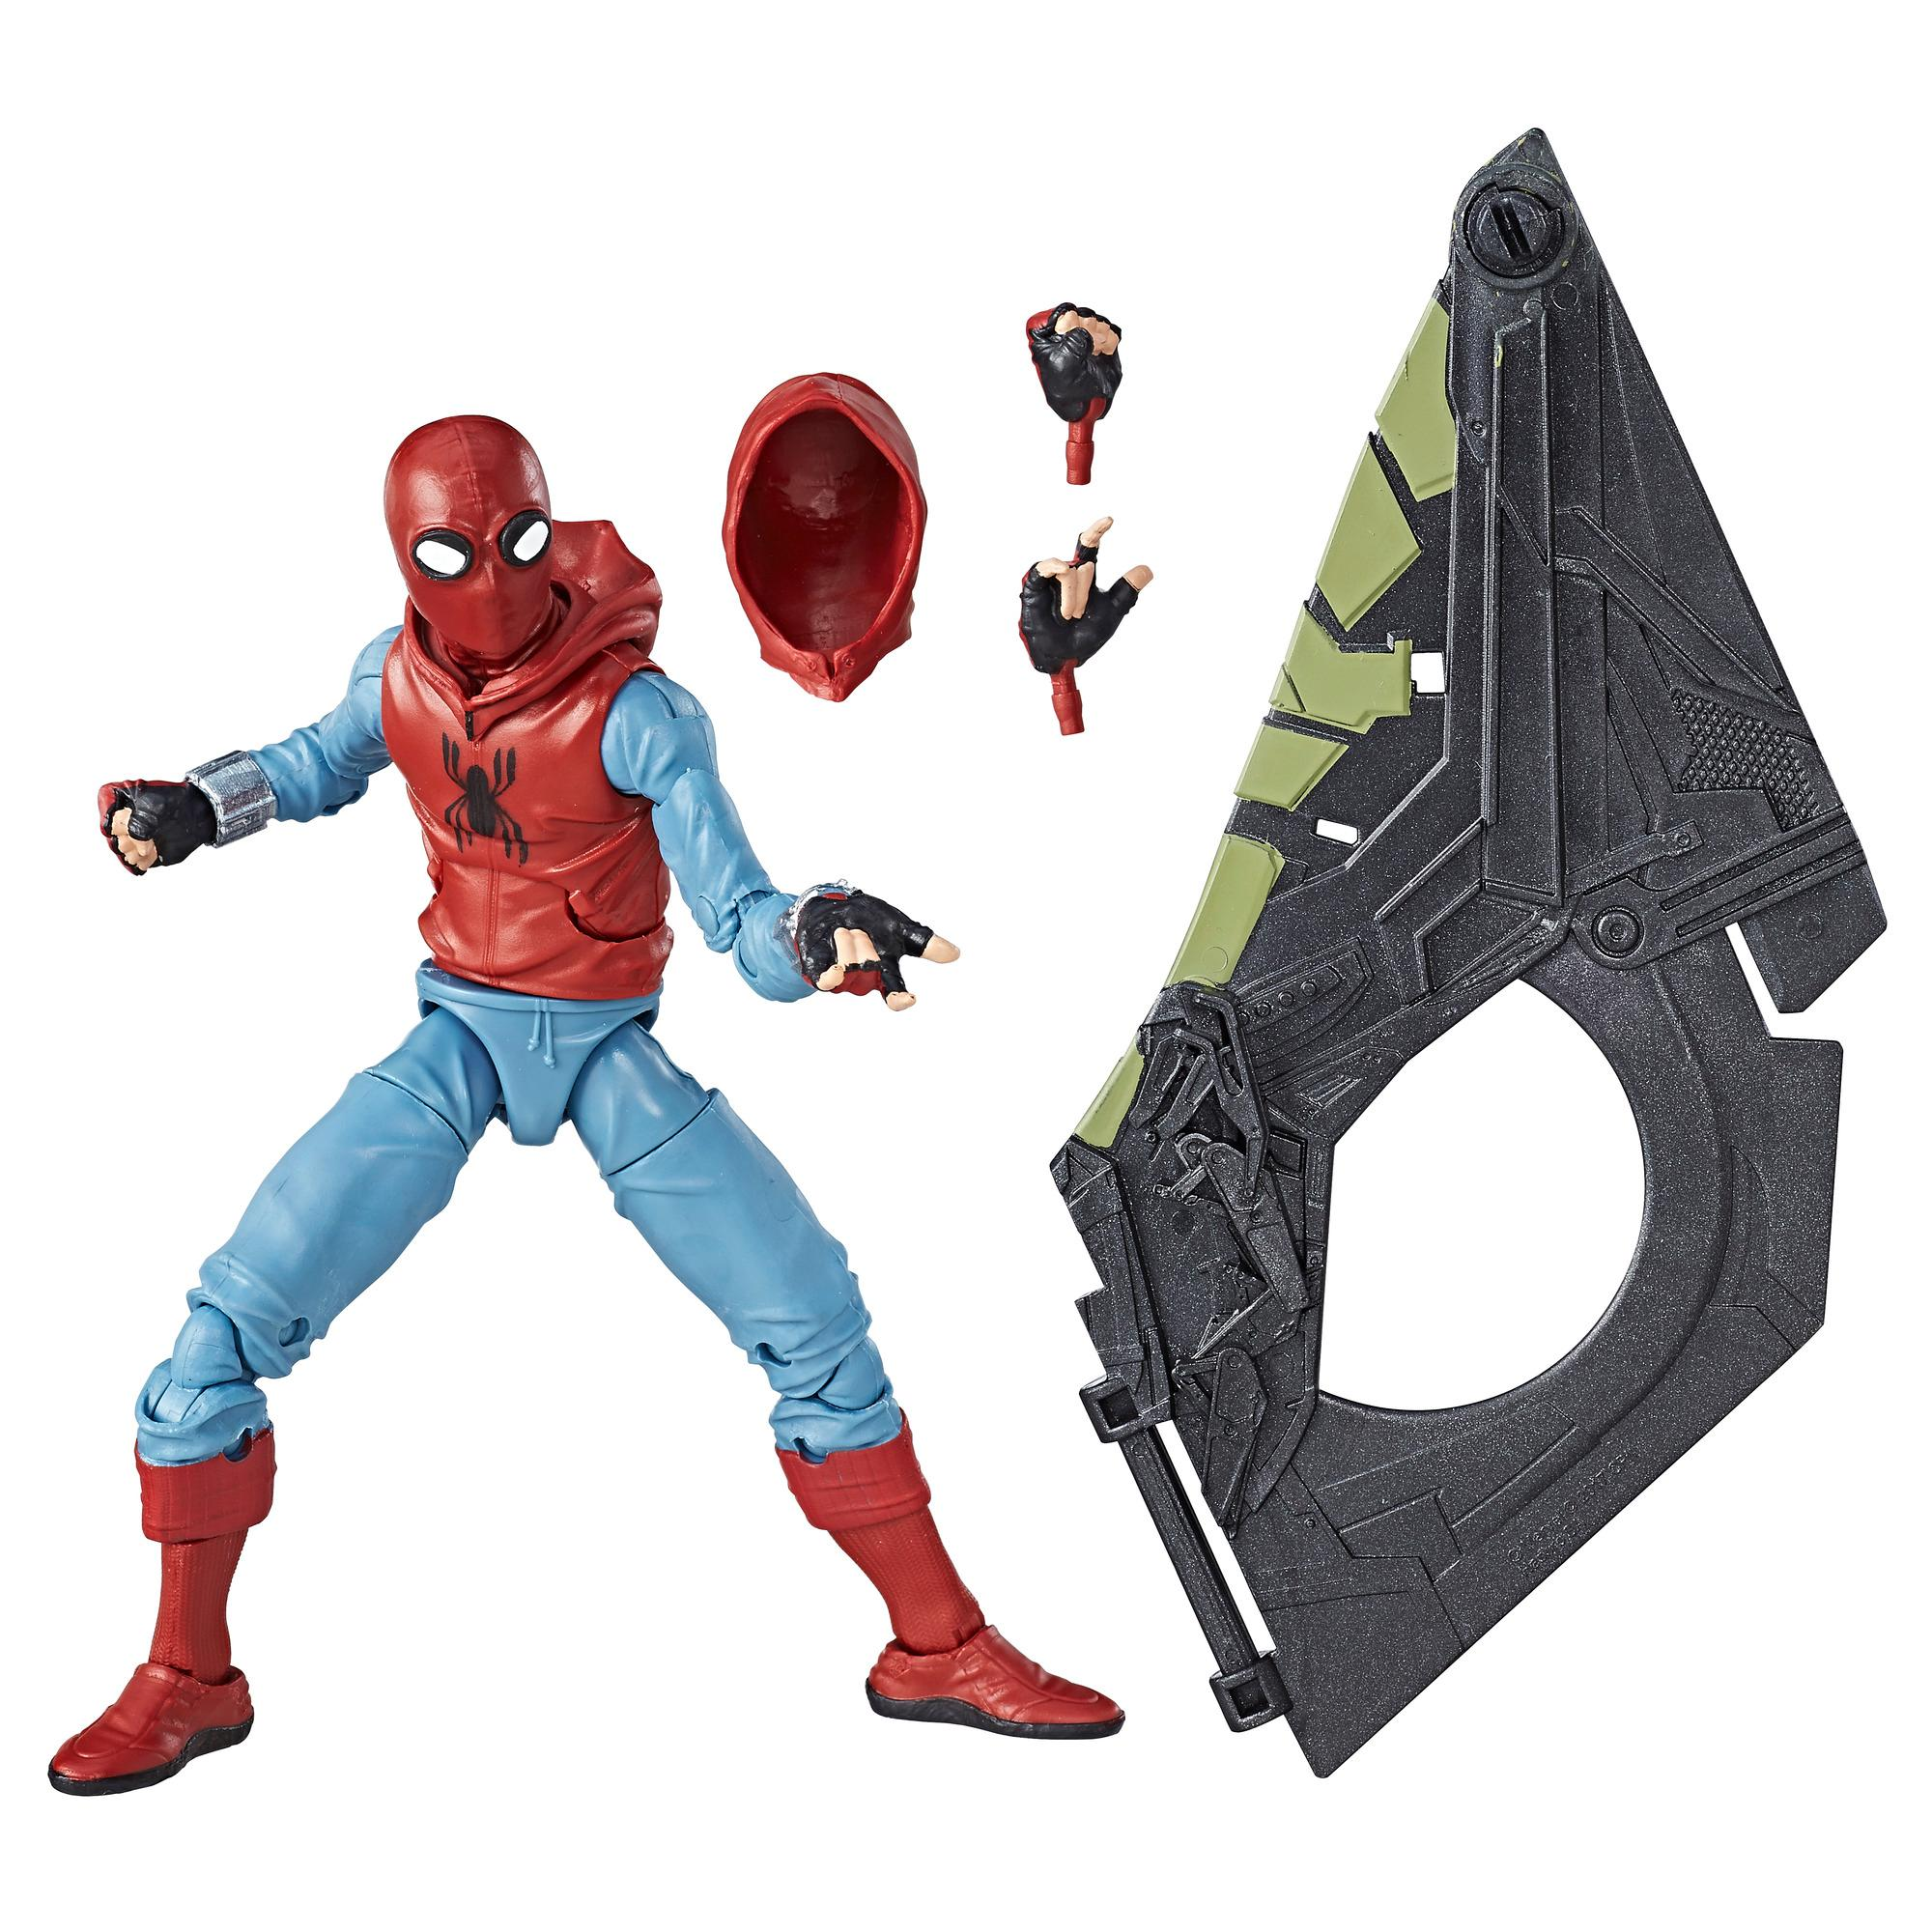 Marvel Spider-Man 6-inch Legends Series Spider-Man (Homemade Suit)